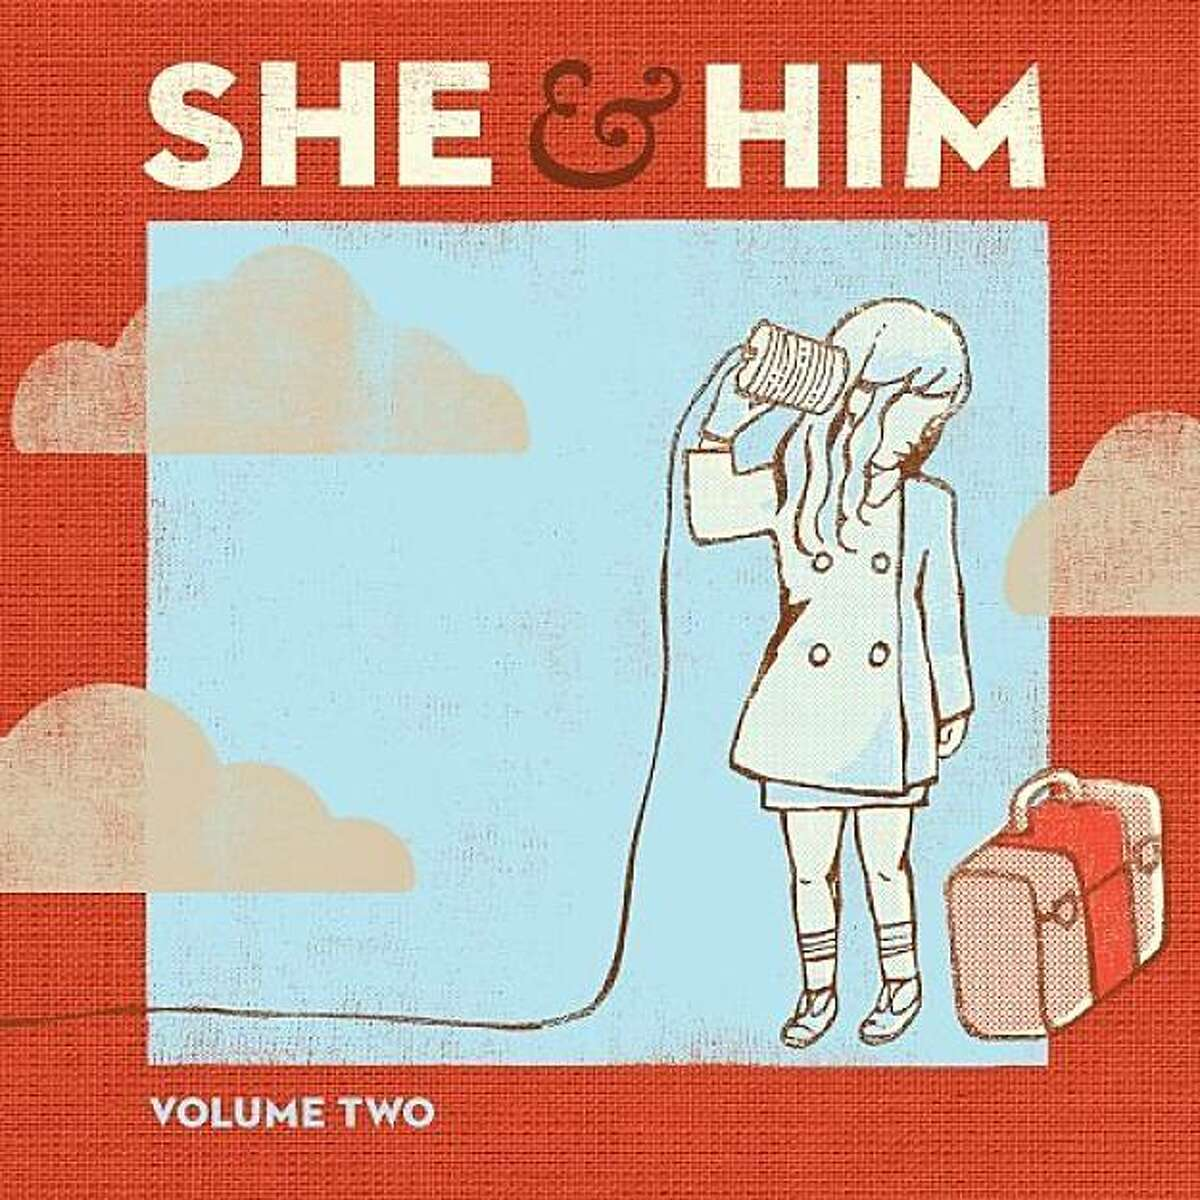 """CD cover, """"Volume Two"""" by She & Him"""